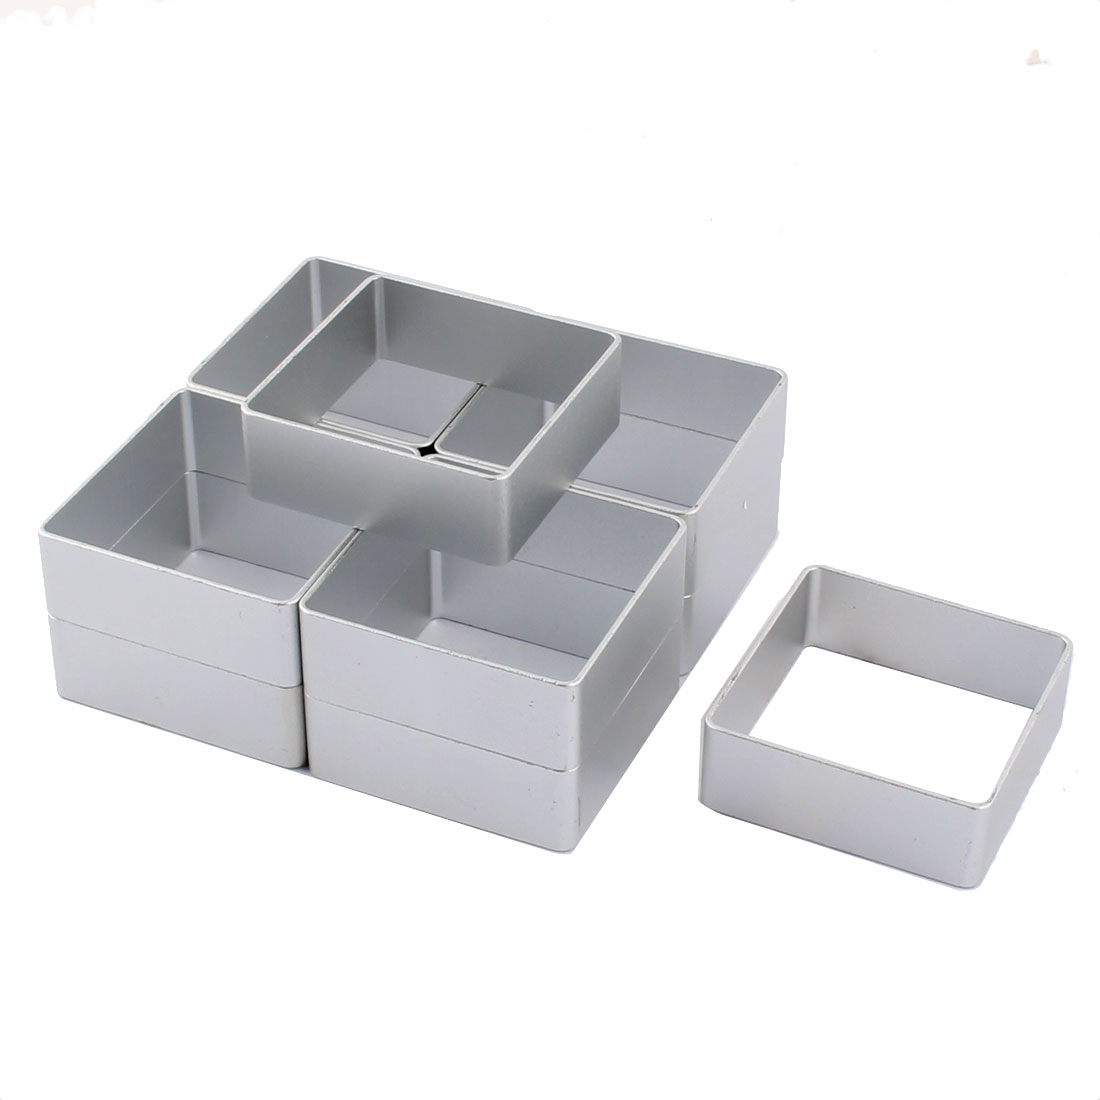 Household Aluminium Alloy Square Cake Cookie Biscuit Bake Mold Mould 10 Pcs